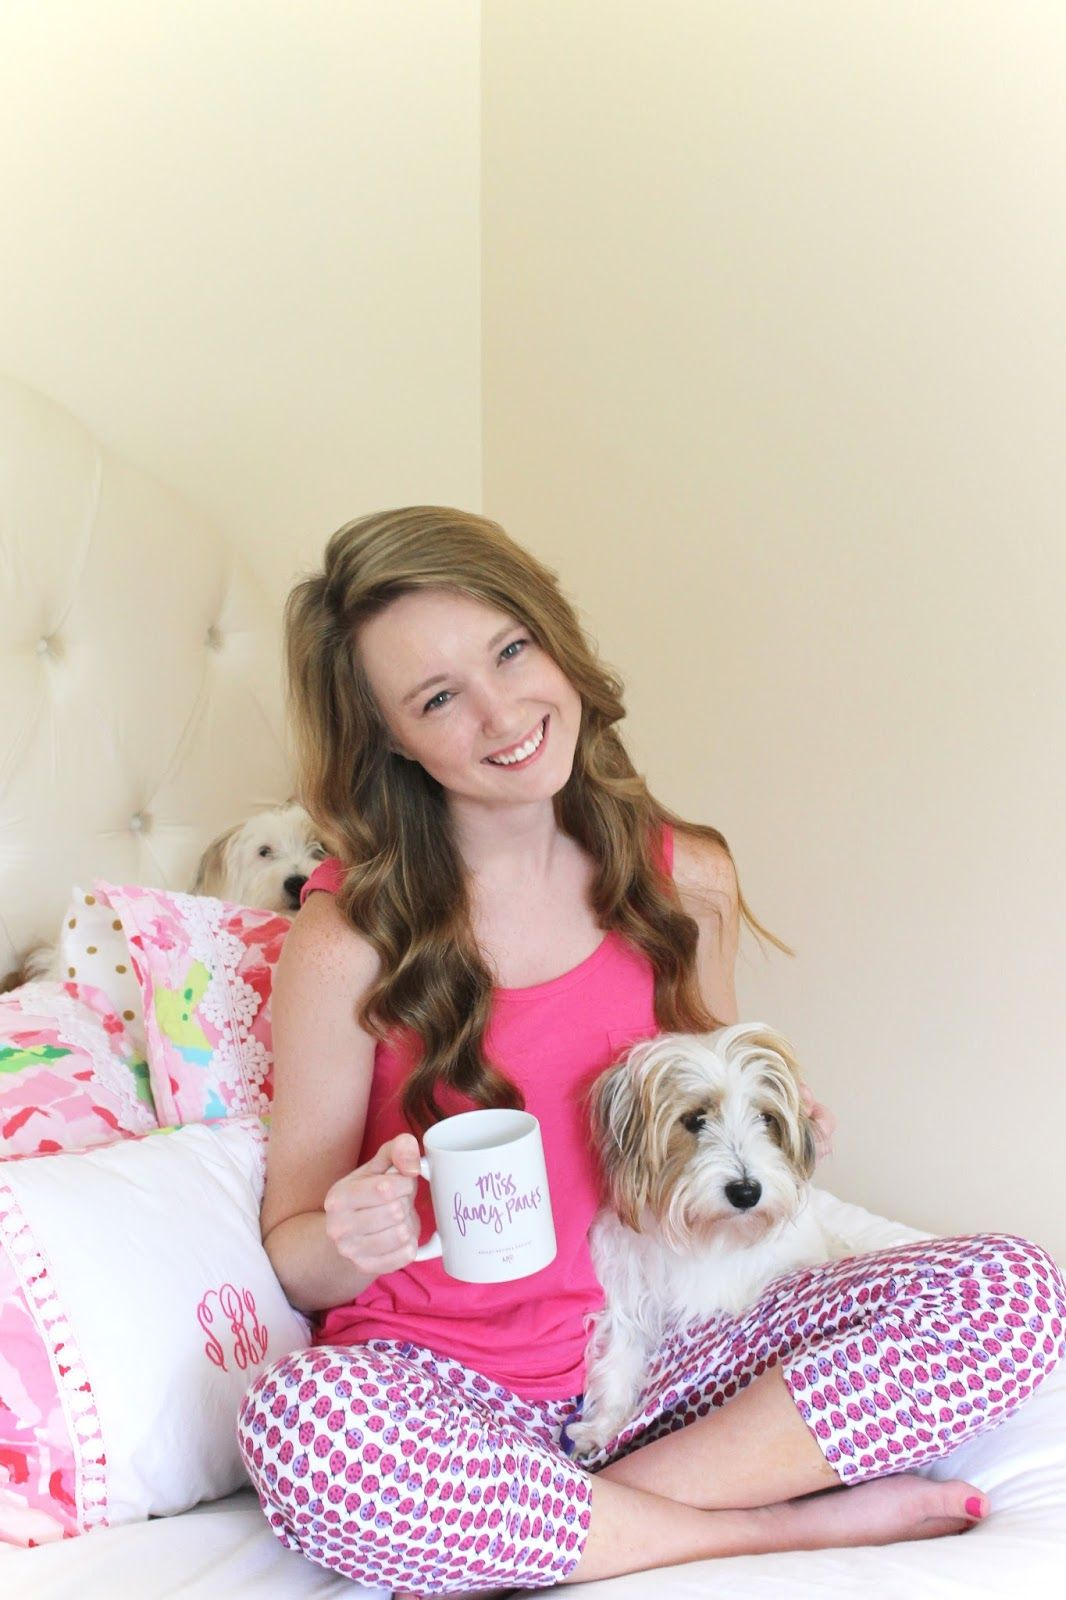 Puppies and coffee...all I need in life. http://www.luckydayblog.com/2015/06/lazy-day.html